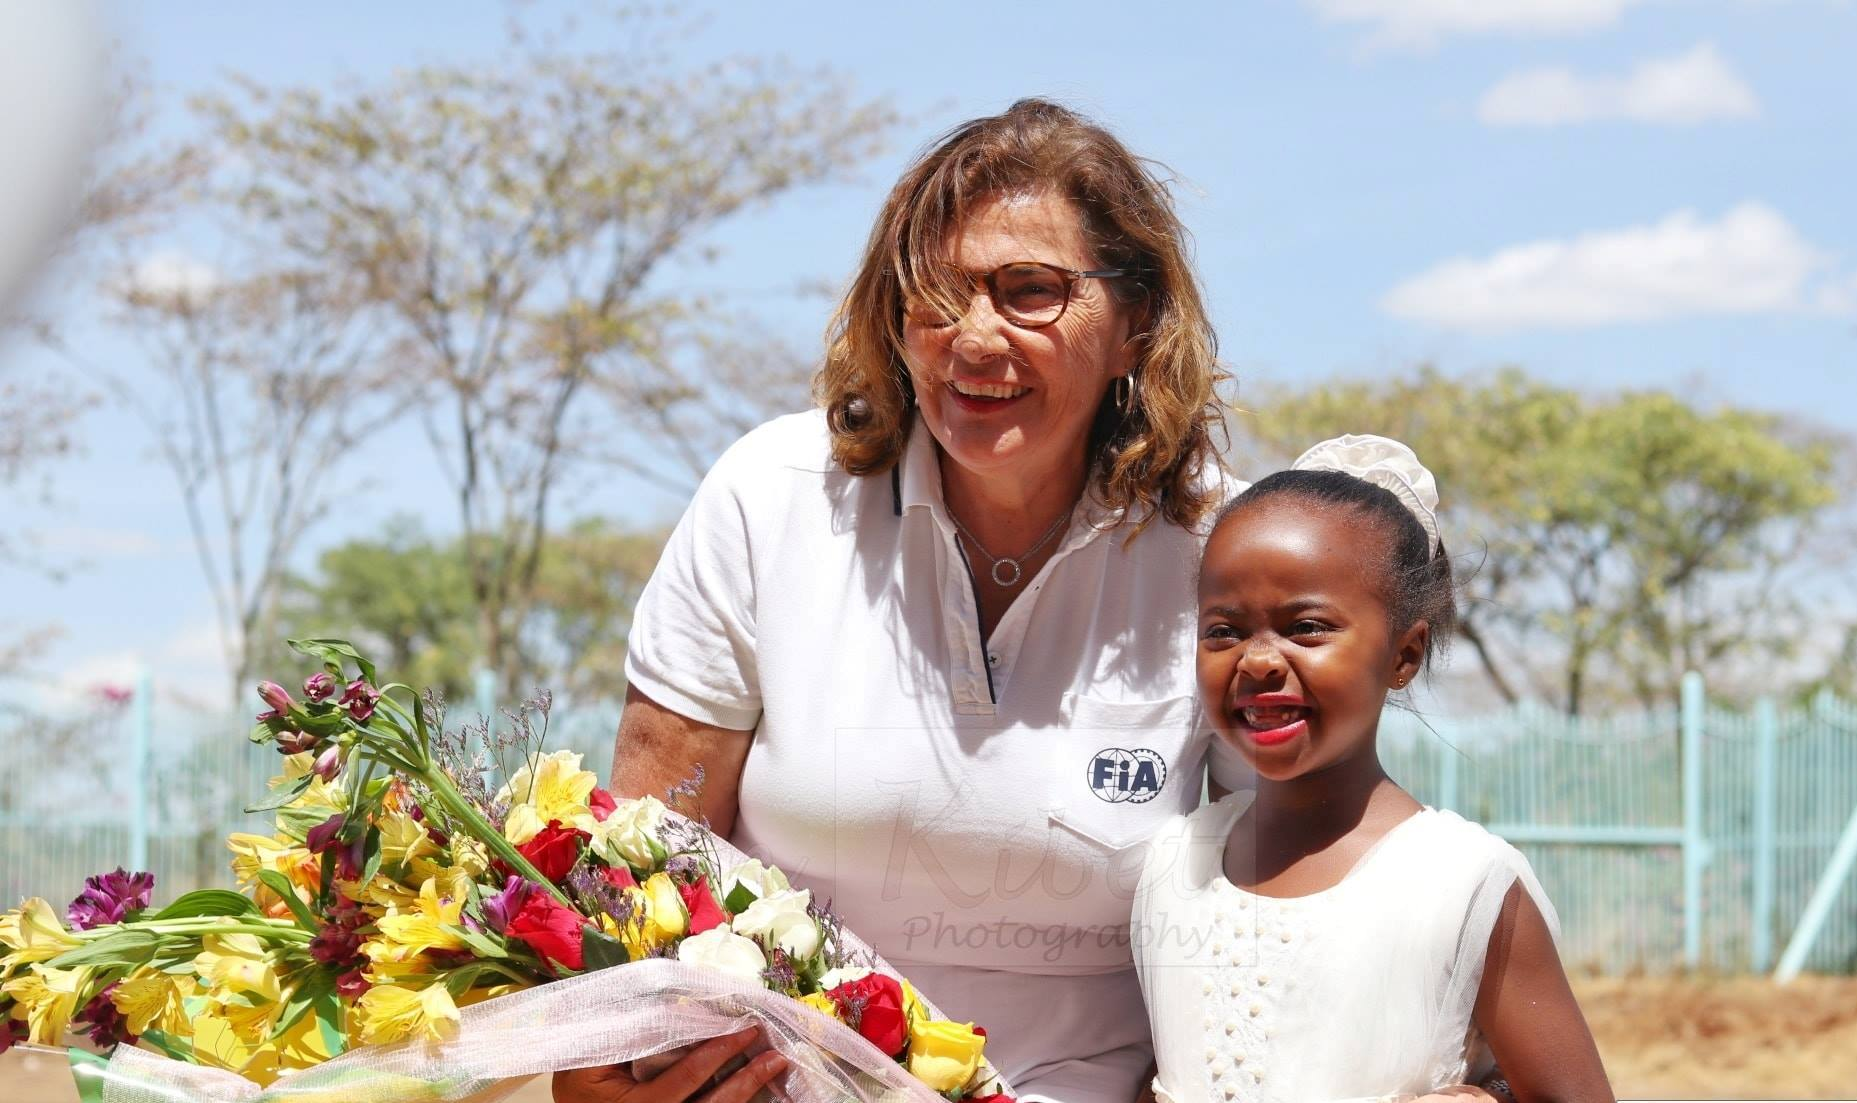 Michelle Mouton (left) is welcomed to familiar grounds where she competed in Safari's WRC days. But this time she was for assesing whether the Safari Rally can return to the world championship roster